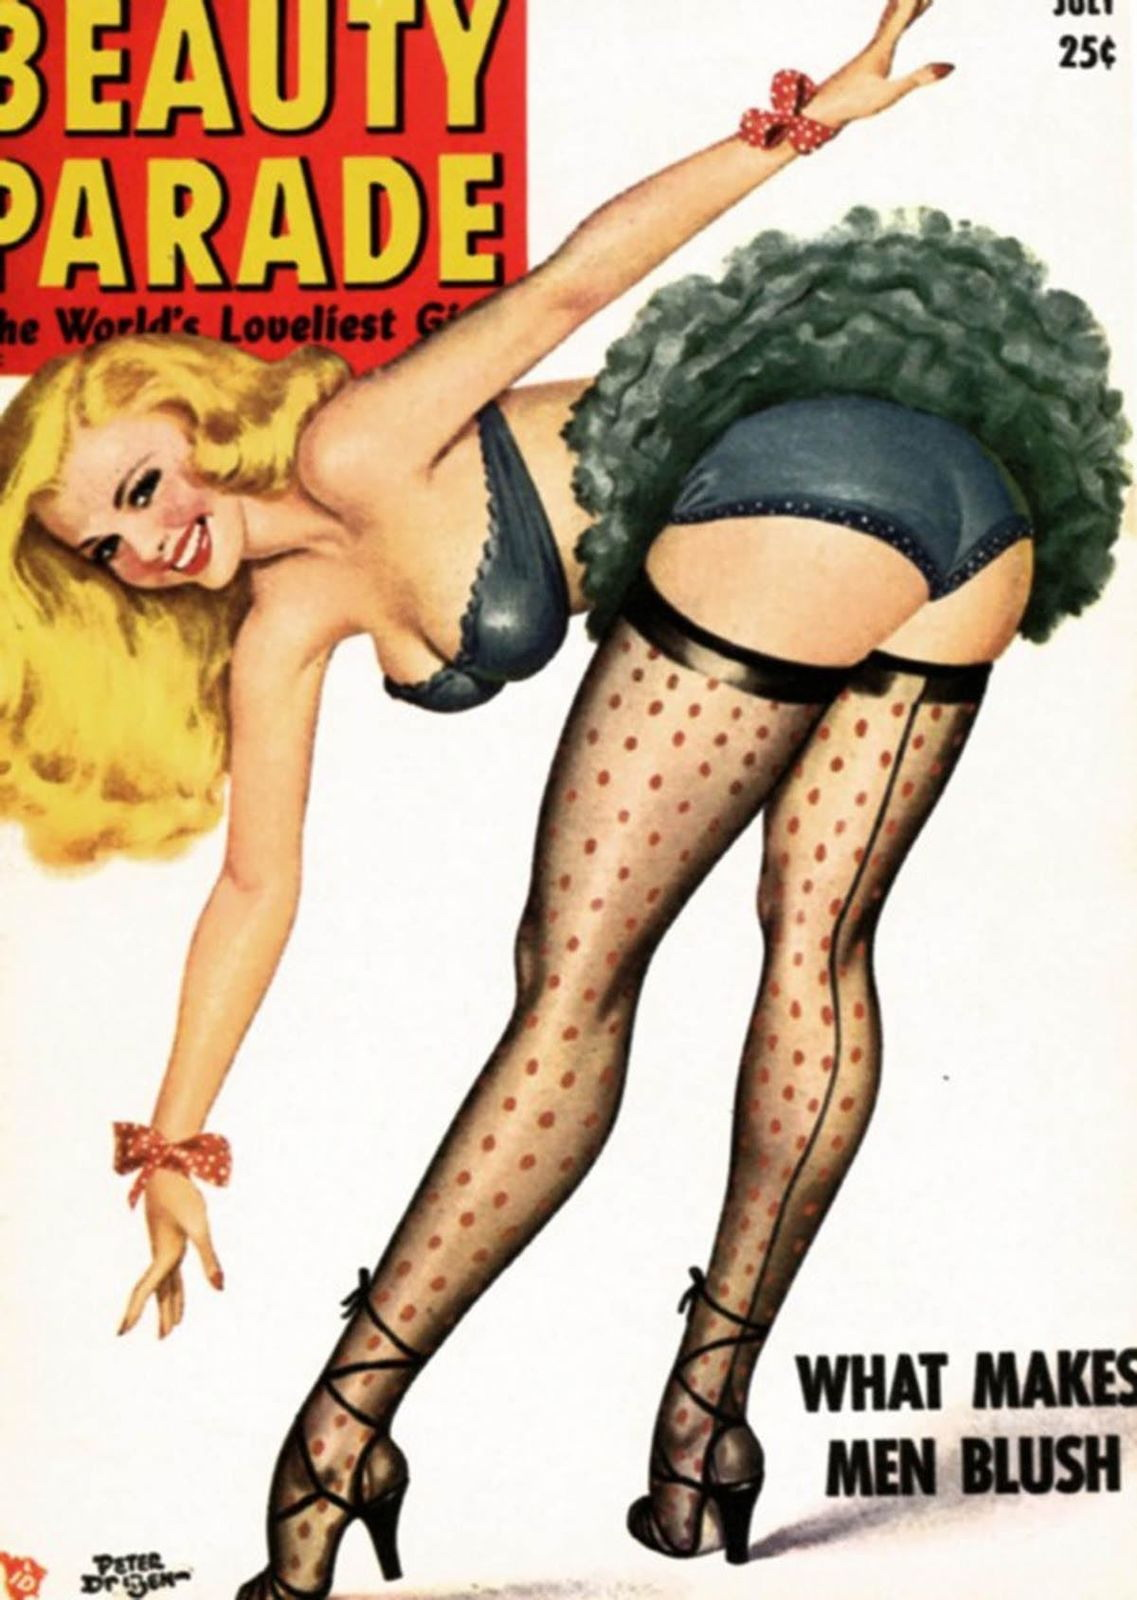 139545-FANTASY-PIN-UP-GIRL-BLONDE-Wall-Print-Poster-UK